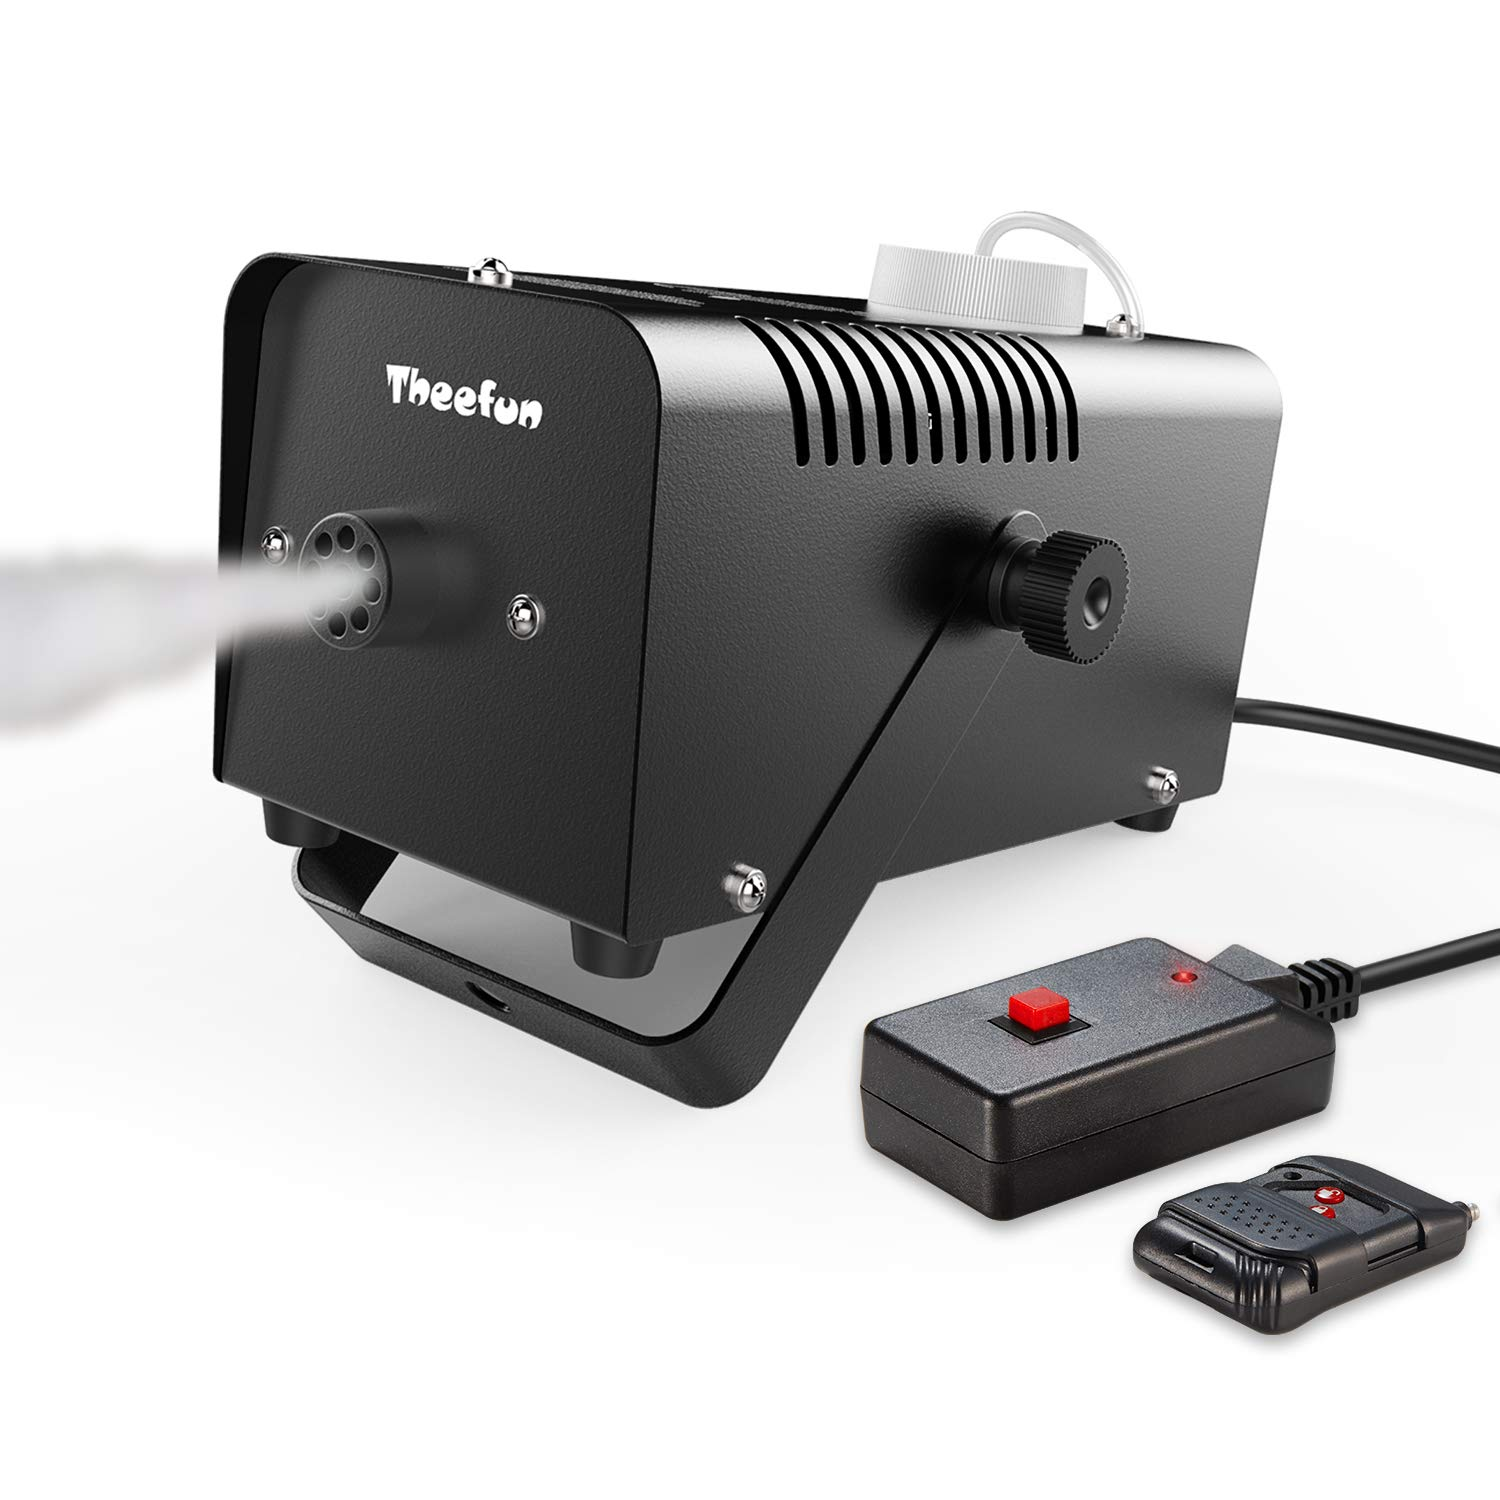 Theefun 400-Watt Portable Halloween and Party Fog Machine with Wireless Remote Control for Holidays, Weddings - impressive output by Theefun